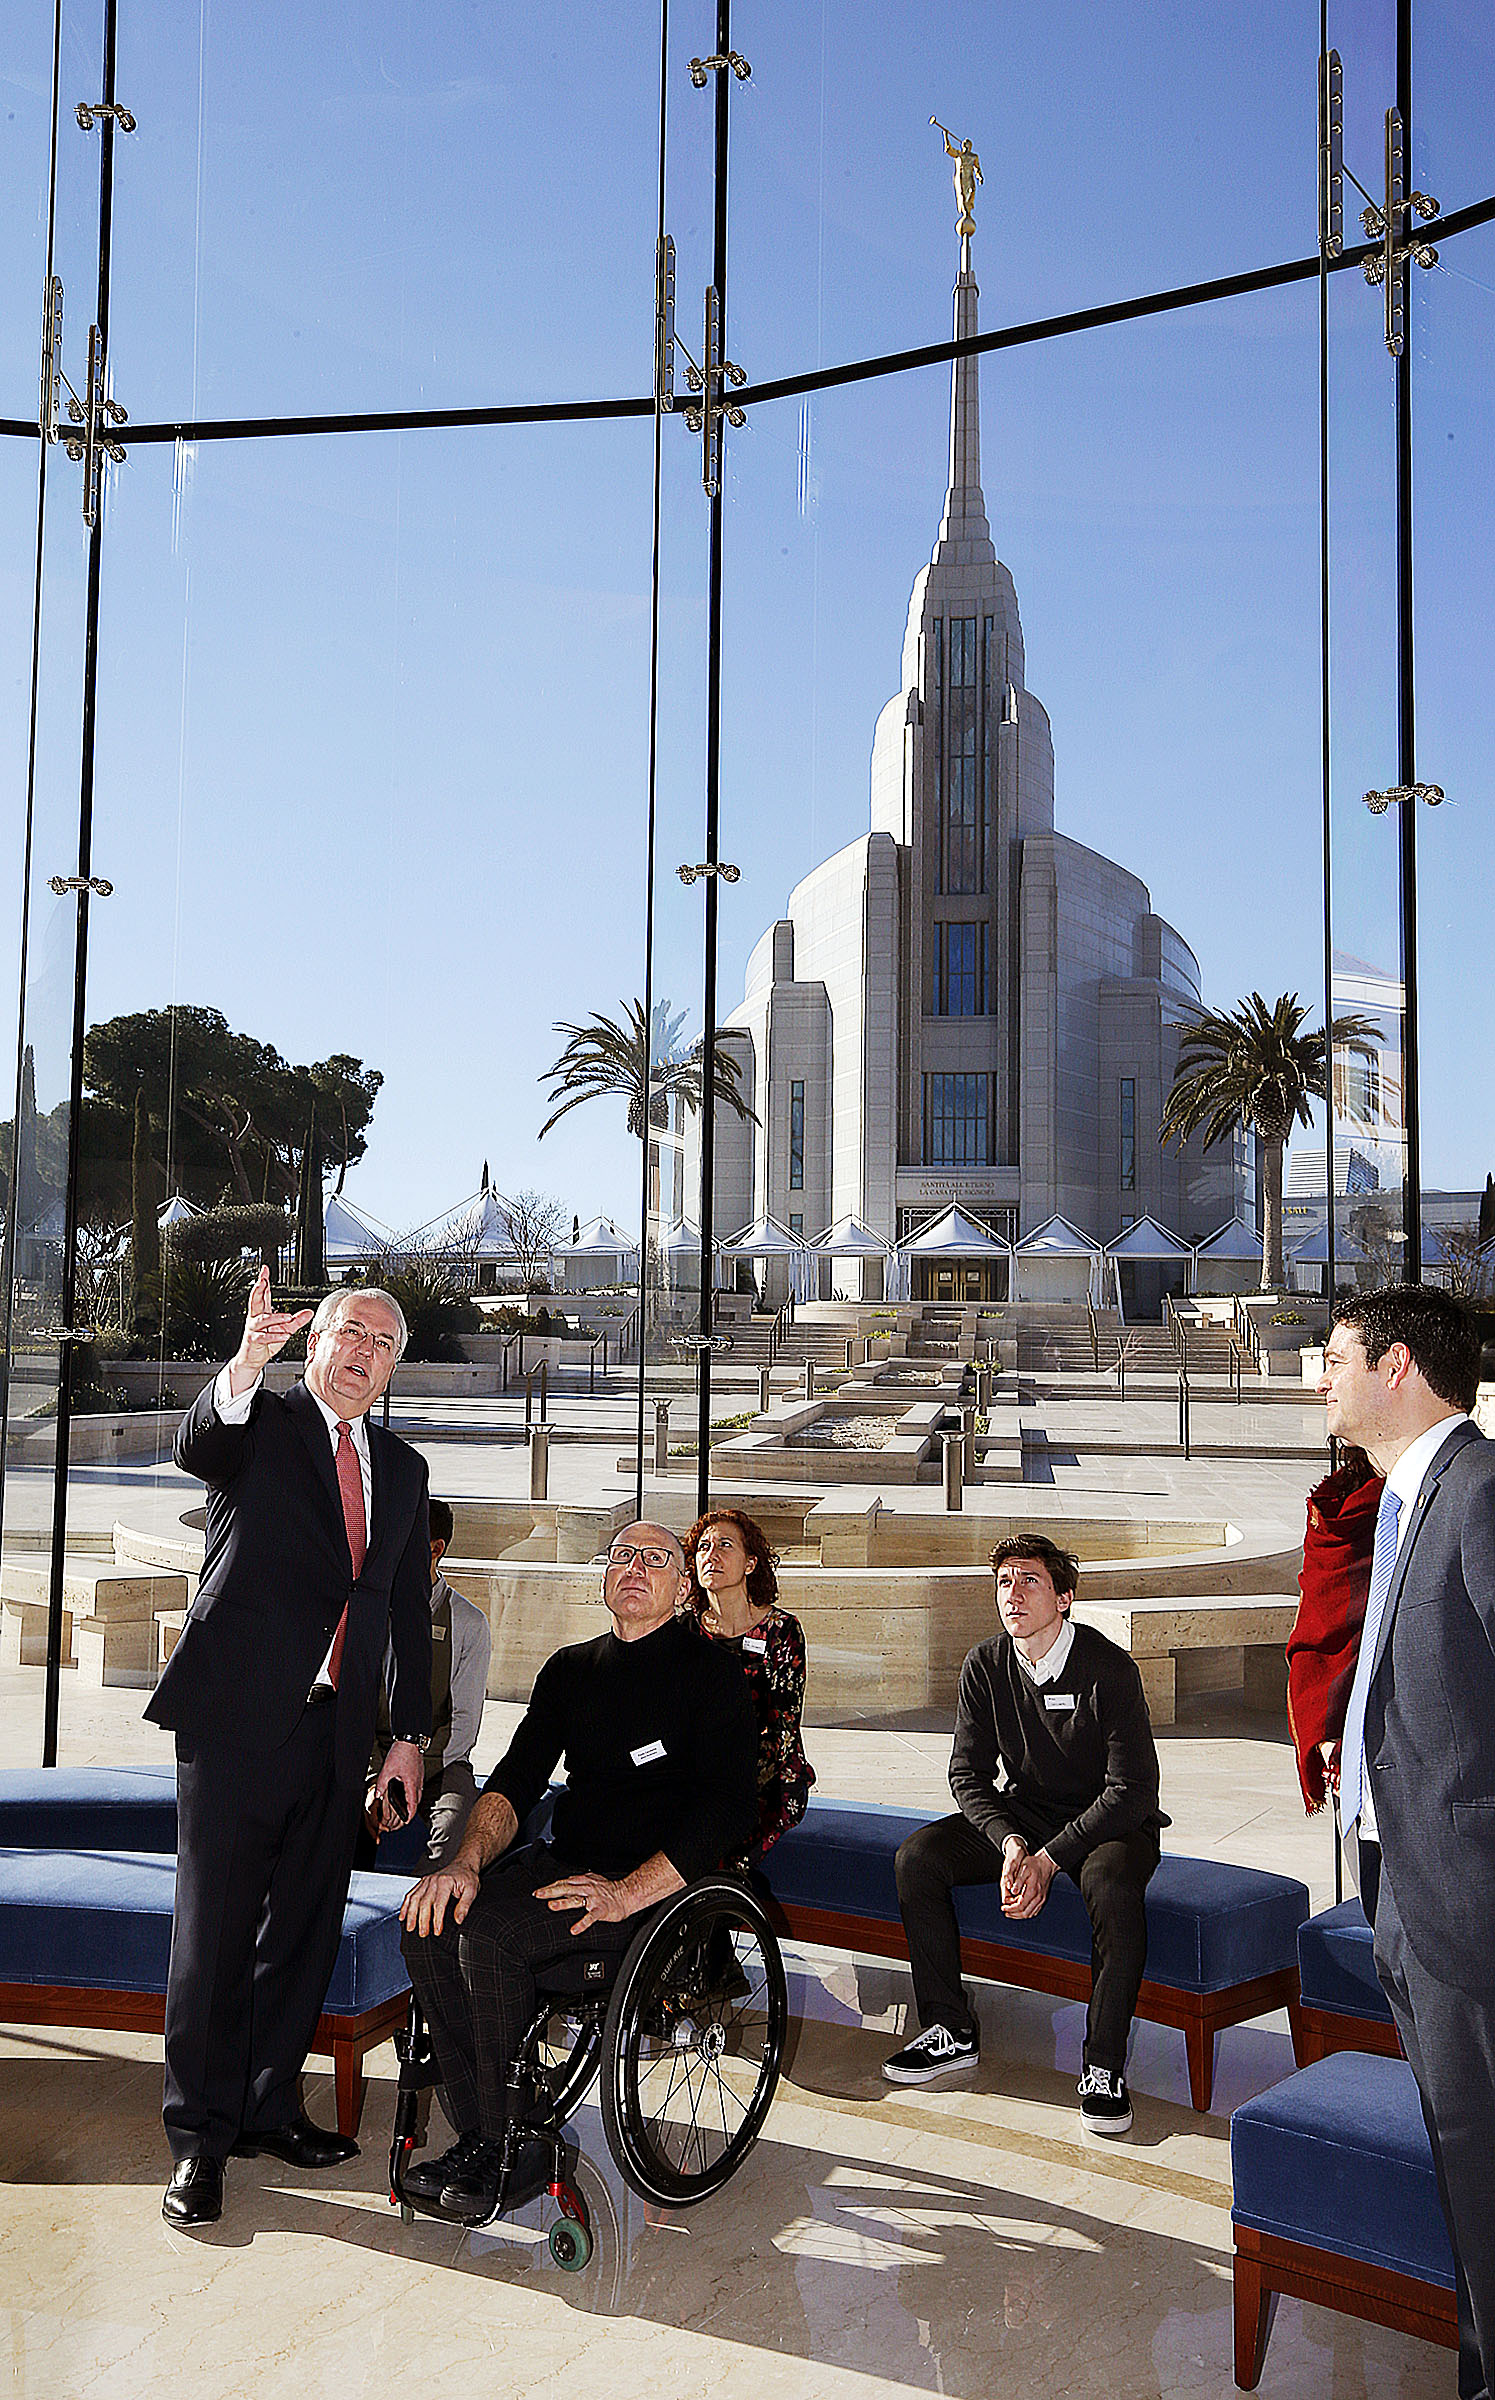 Elder Jack N. Gerard of The Church of Jesus Christ of Latter-day Saints, leads Paralympian Paolo Cecchetto and his family on a tour of the Rome Italy Temple Rome Temple Visitors' Center on Tuesday, Jan. 15, 2019.